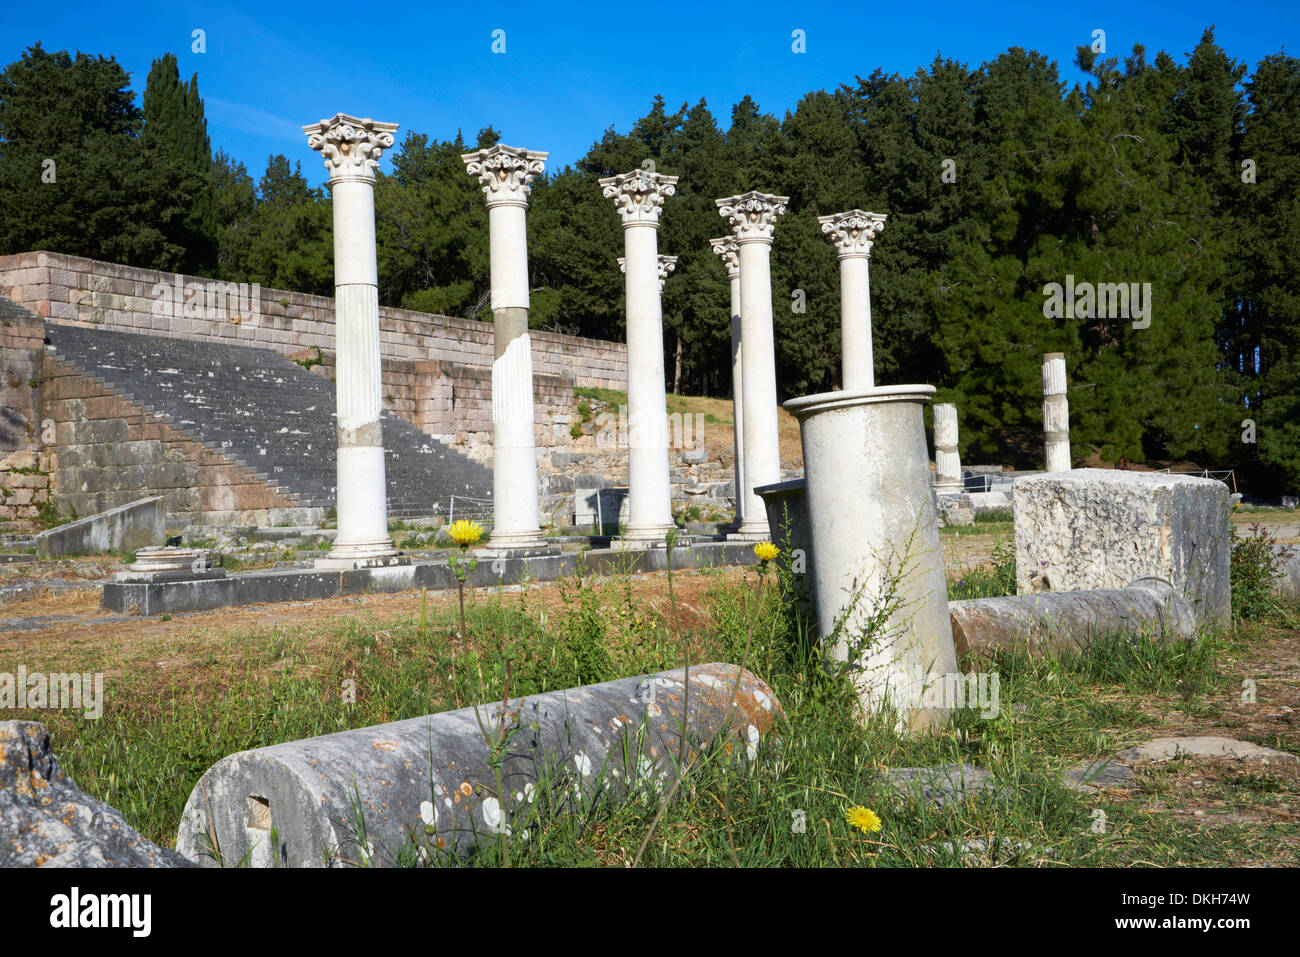 Columns in the ancient Greek city of Asklepieion, Kos, Dodecanese, Greek Islands, Greece, Europe - Stock Image